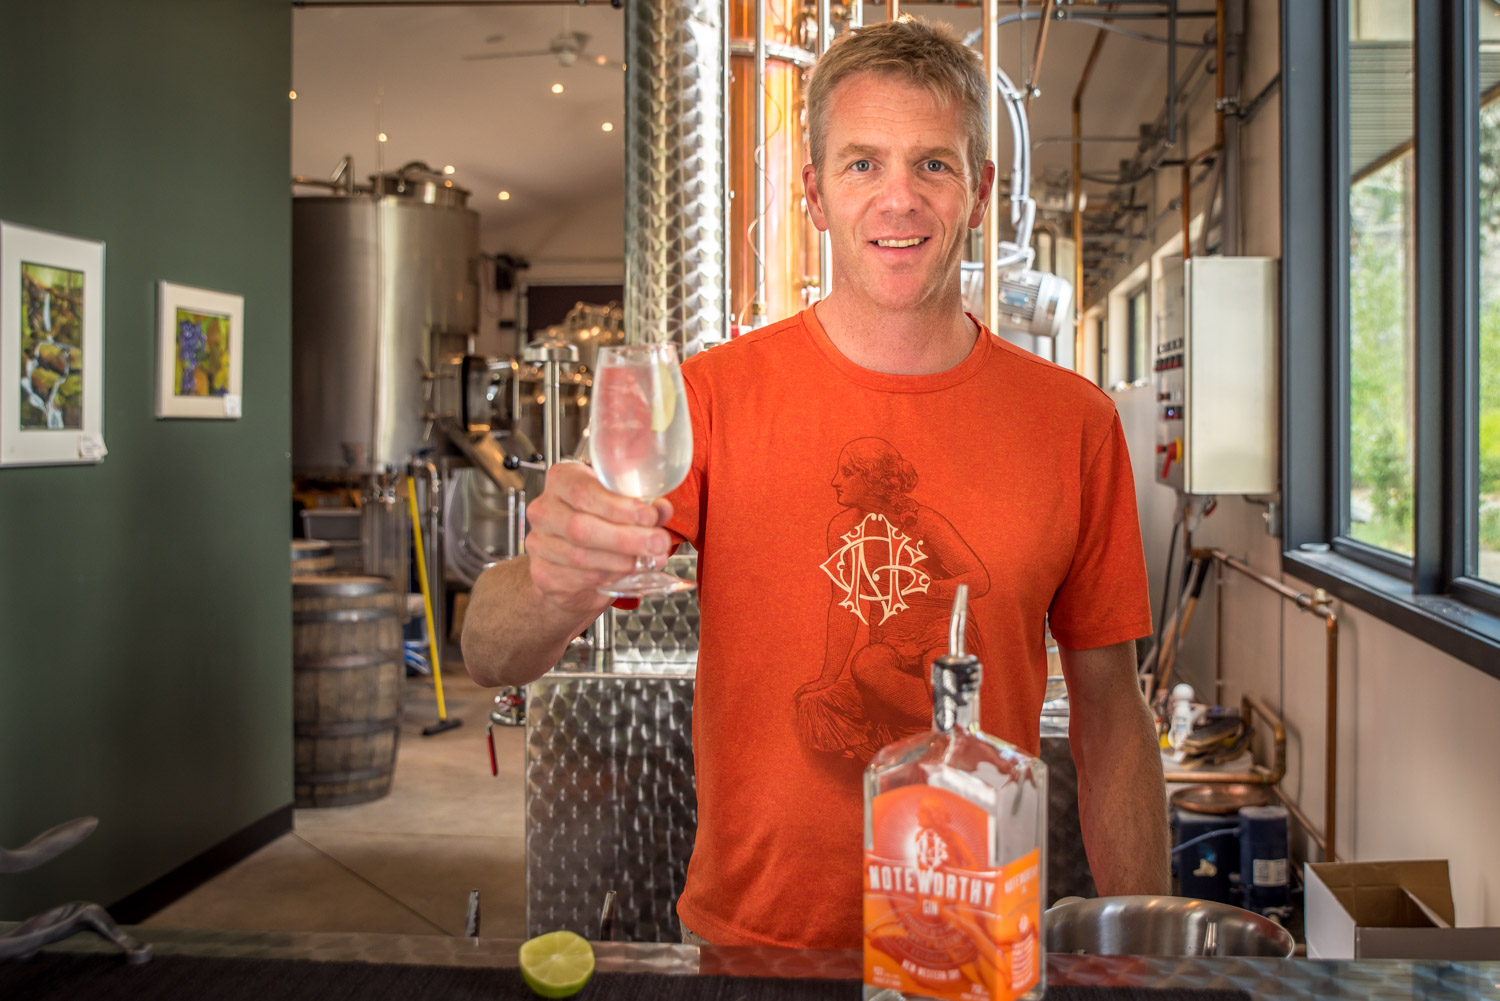 Grant Stevely, owner of Dubh Glas Distillery at Gallagher Lake north of Oliver, holds up a glass of his award-winning Noteworthy Gin. His ultimate goal, however, is to develop the best single malt whiskey in the world. (Richard McGuire photo)